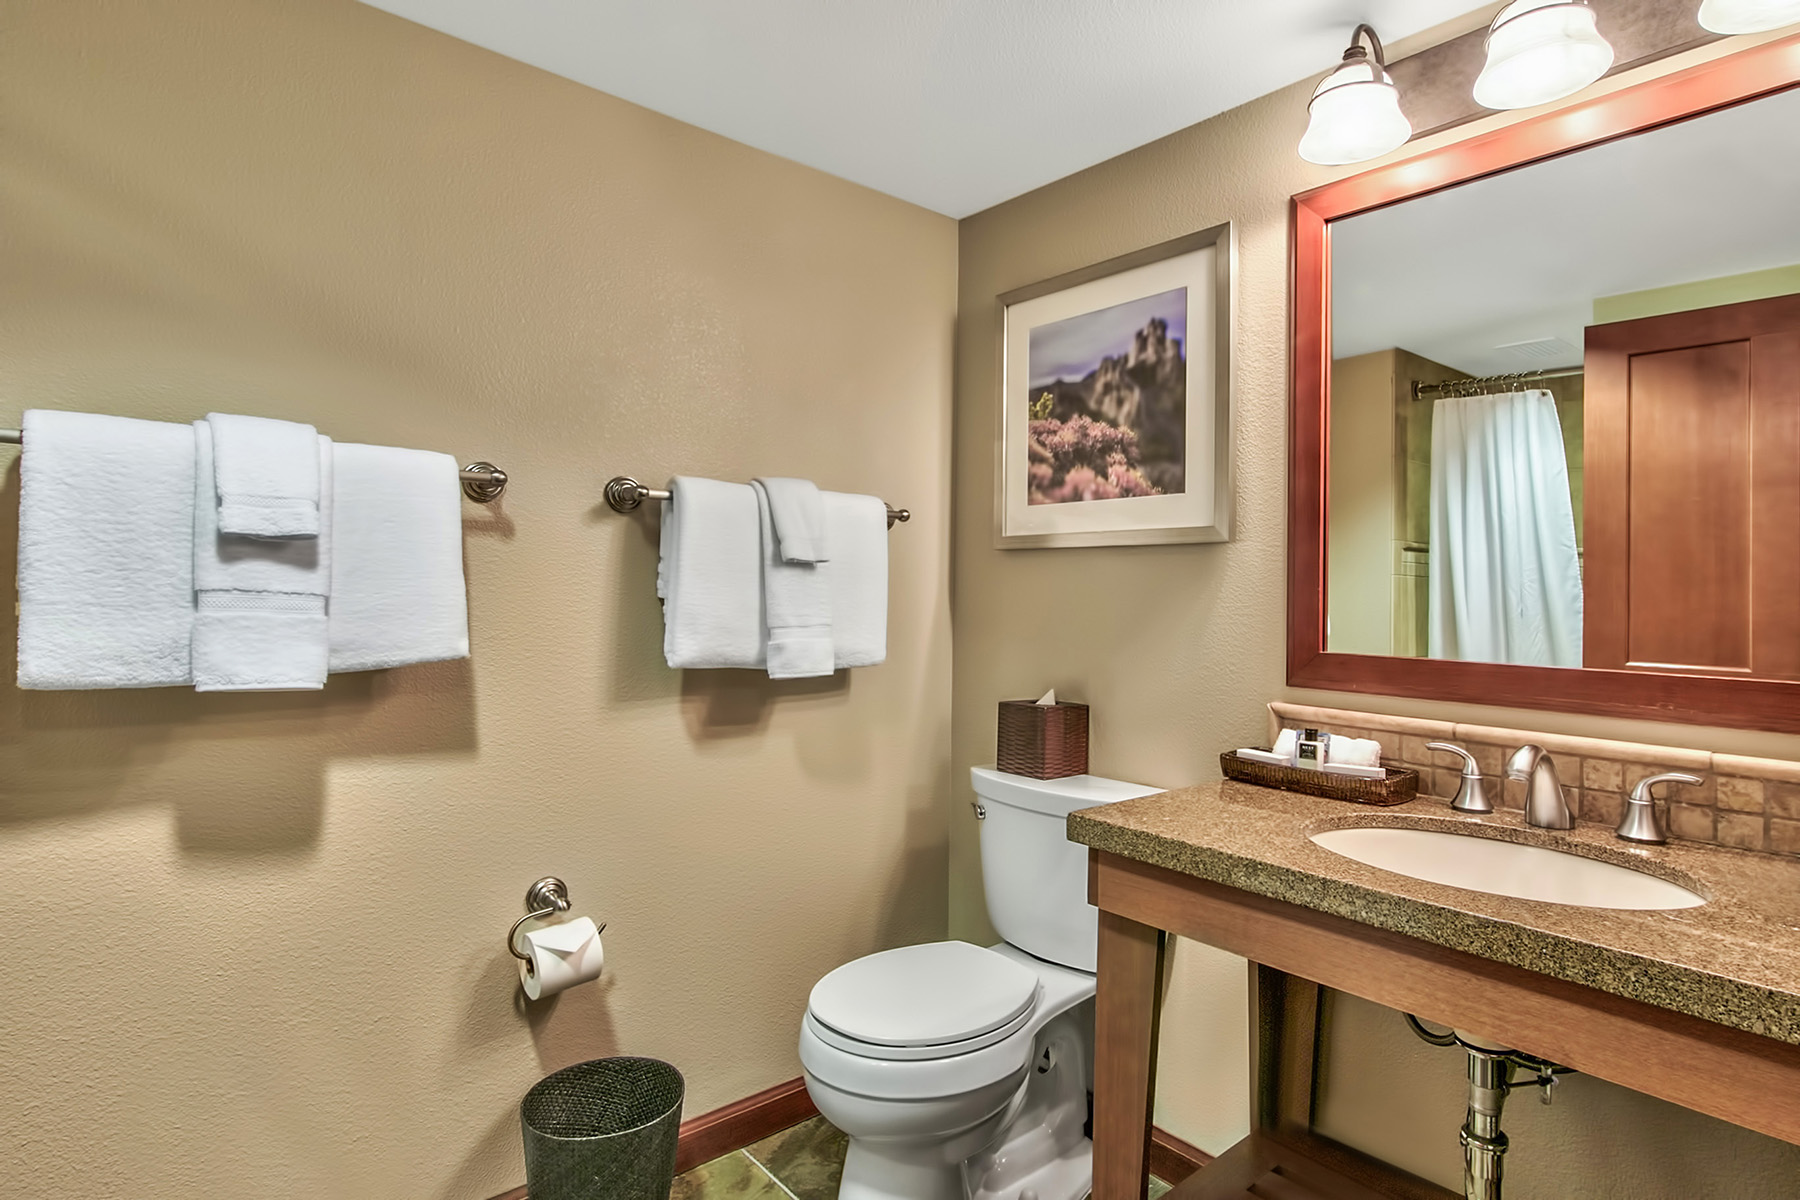 Additional photo for property listing at 400 Squaw Creek Road, #434-436, Olympic Valley, California 96146 400 Squaw Creek Road #434-436 奥林匹克山, 加利福尼亚州 96146 美国